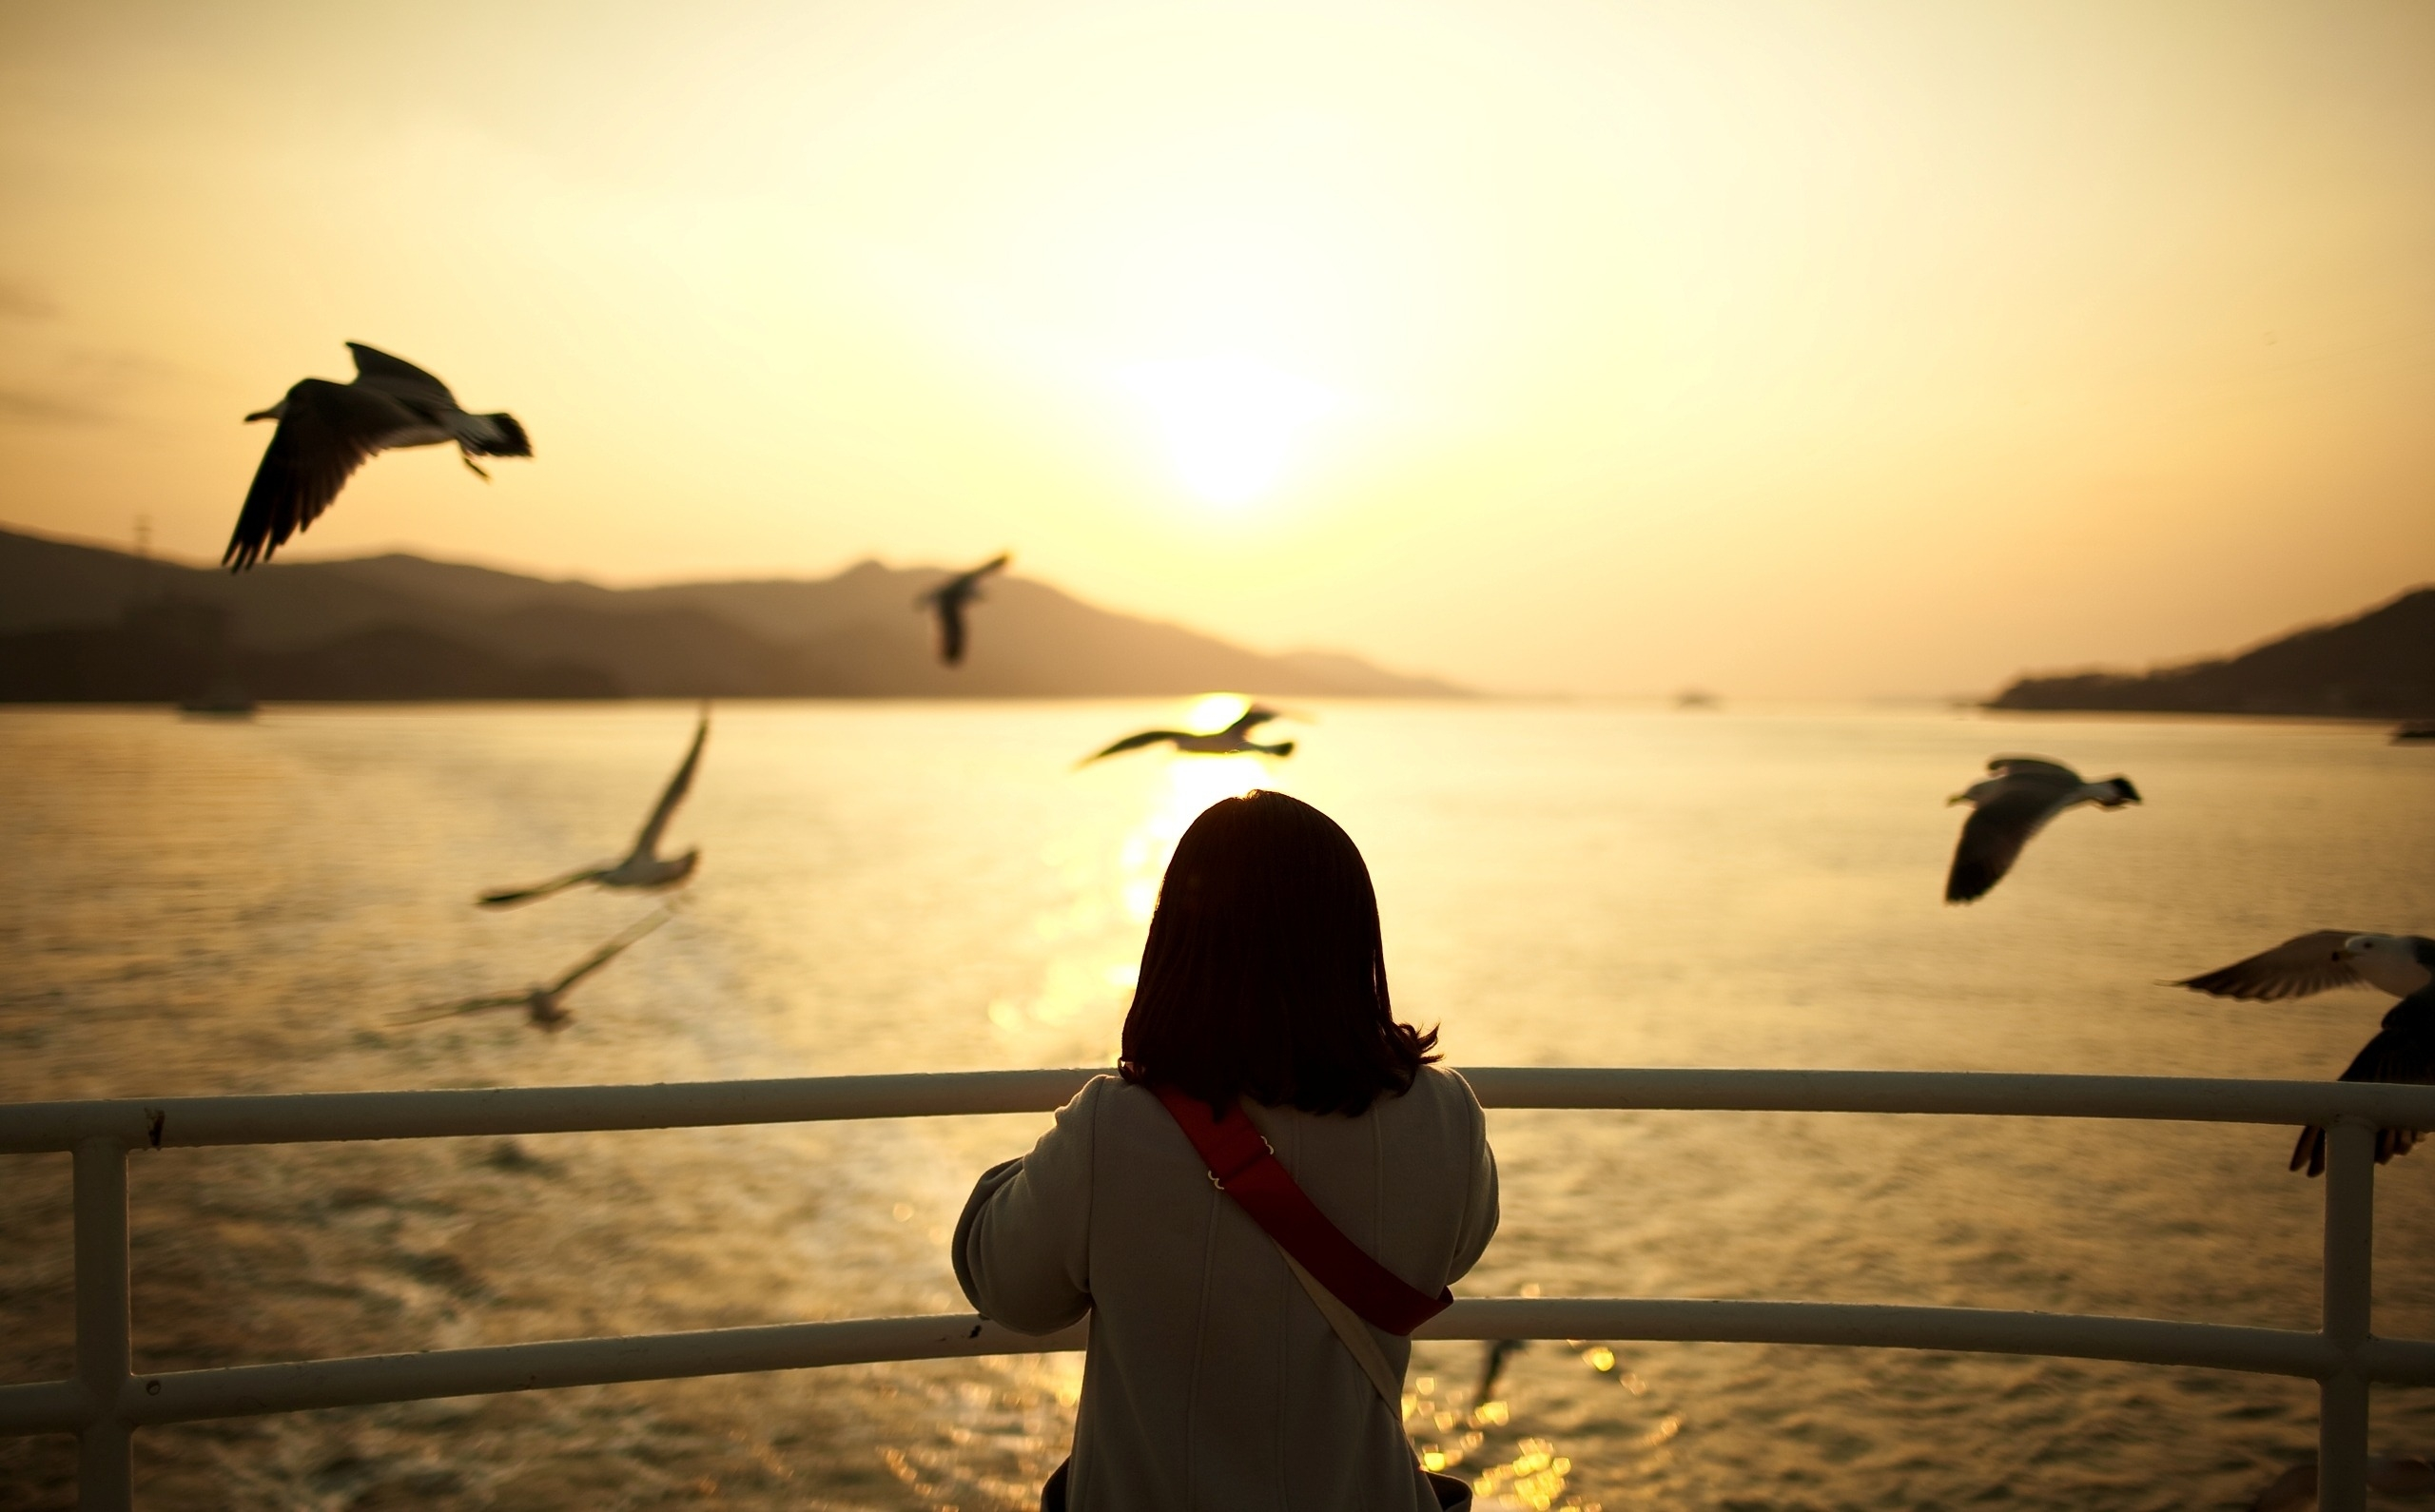 141834 download wallpaper Landscape, Sunset, Sun, Seagulls, Swimming, Miscellanea, Miscellaneous, Girl, Ship screensavers and pictures for free